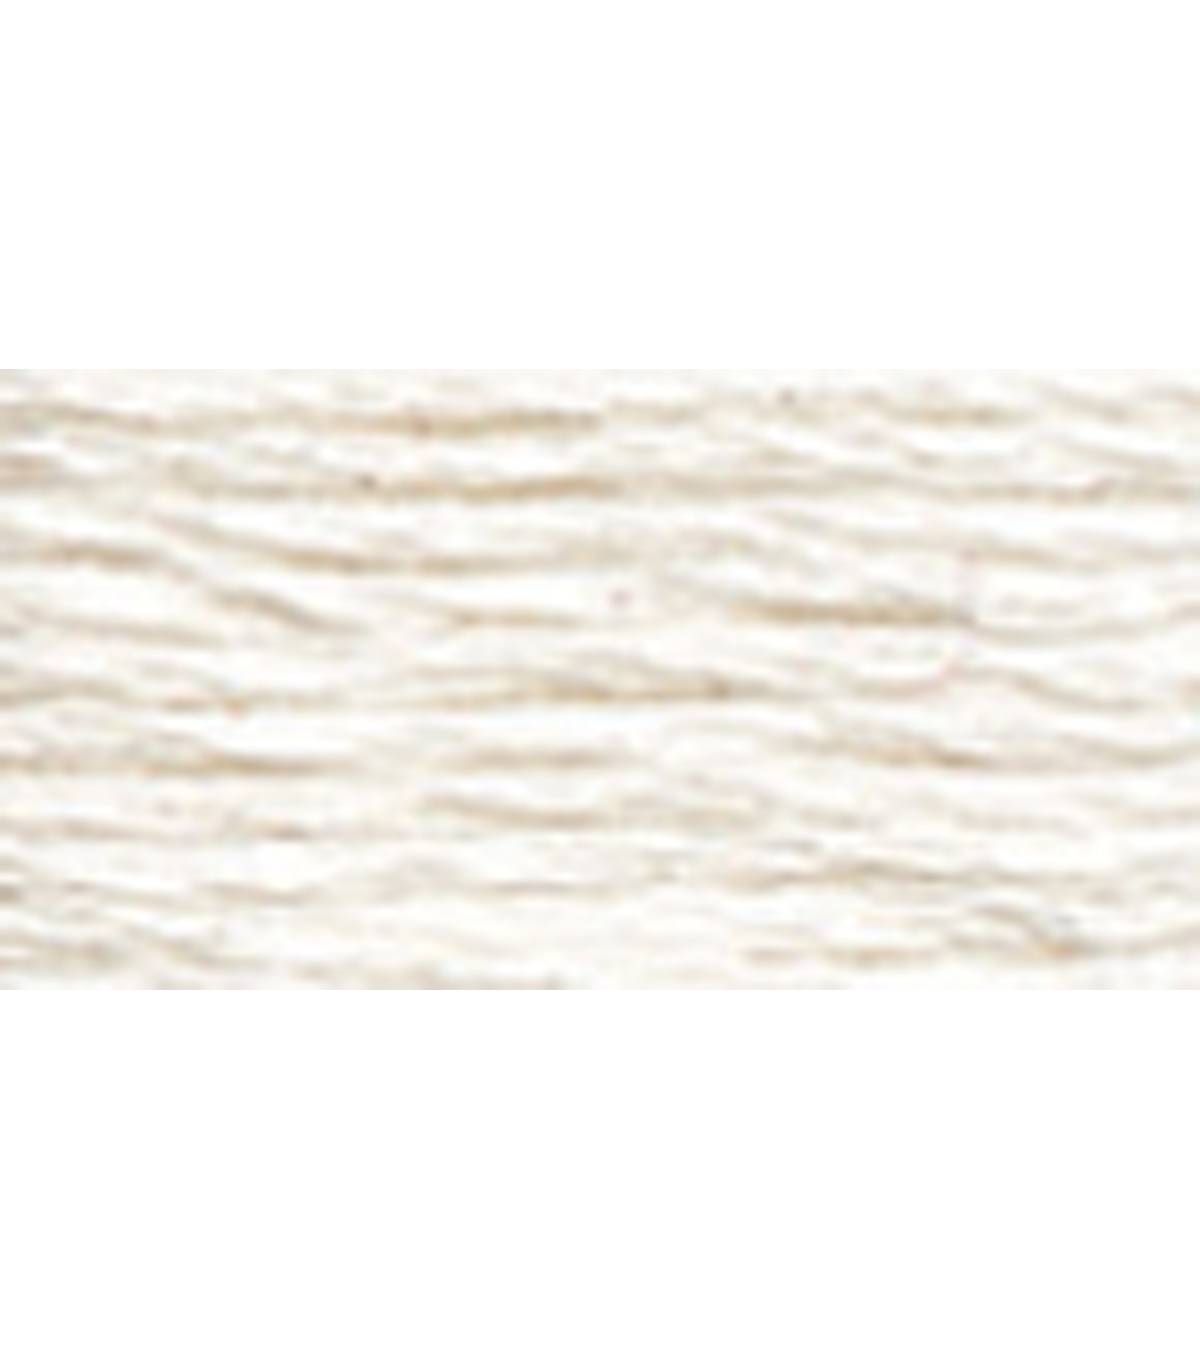 Anchor 6-Strand Embroidery Floss 8.75yd-White